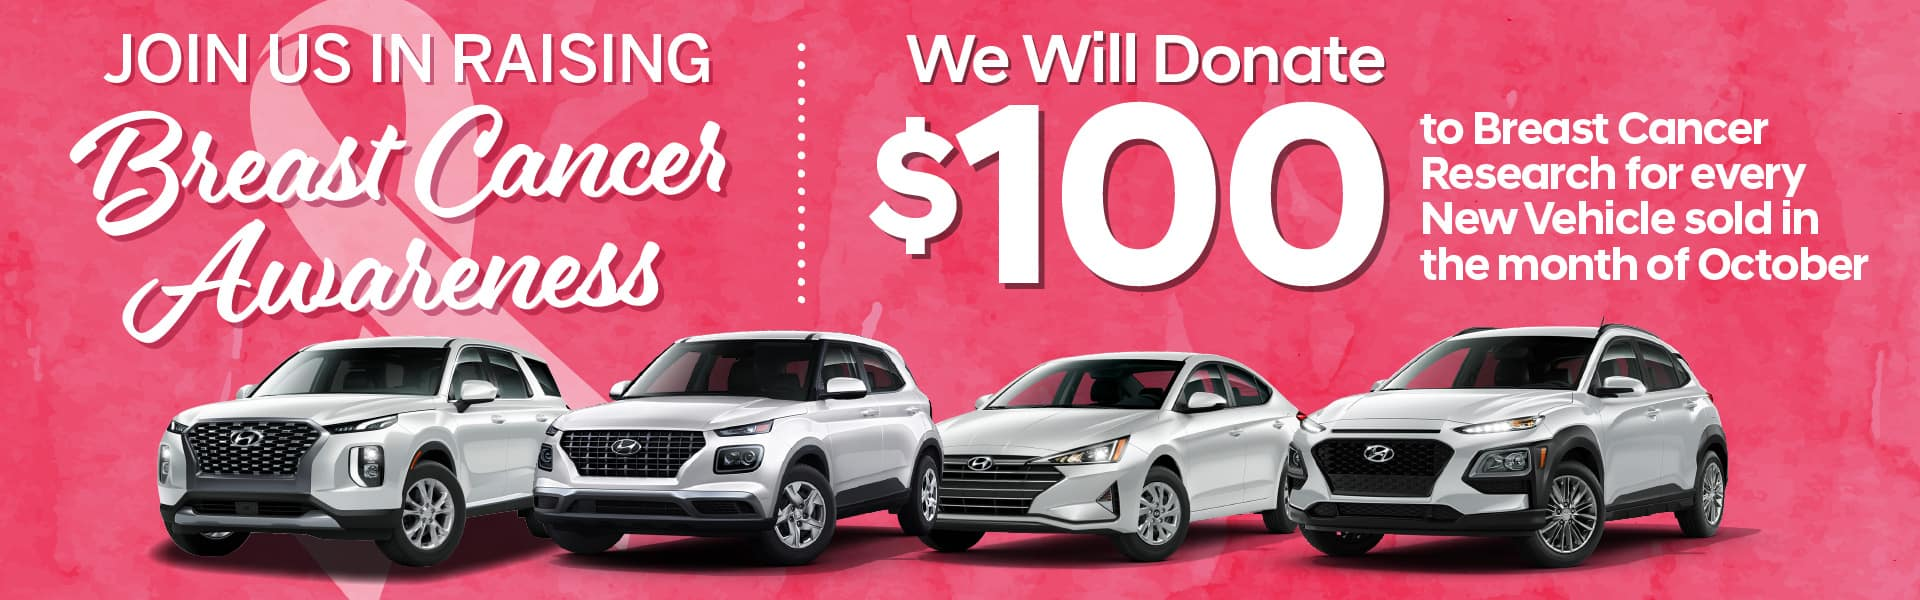 Join Us In Raising Breast Cancer Awareness - We will Donate $100 to breast cancer research for every new vehicle sold in October